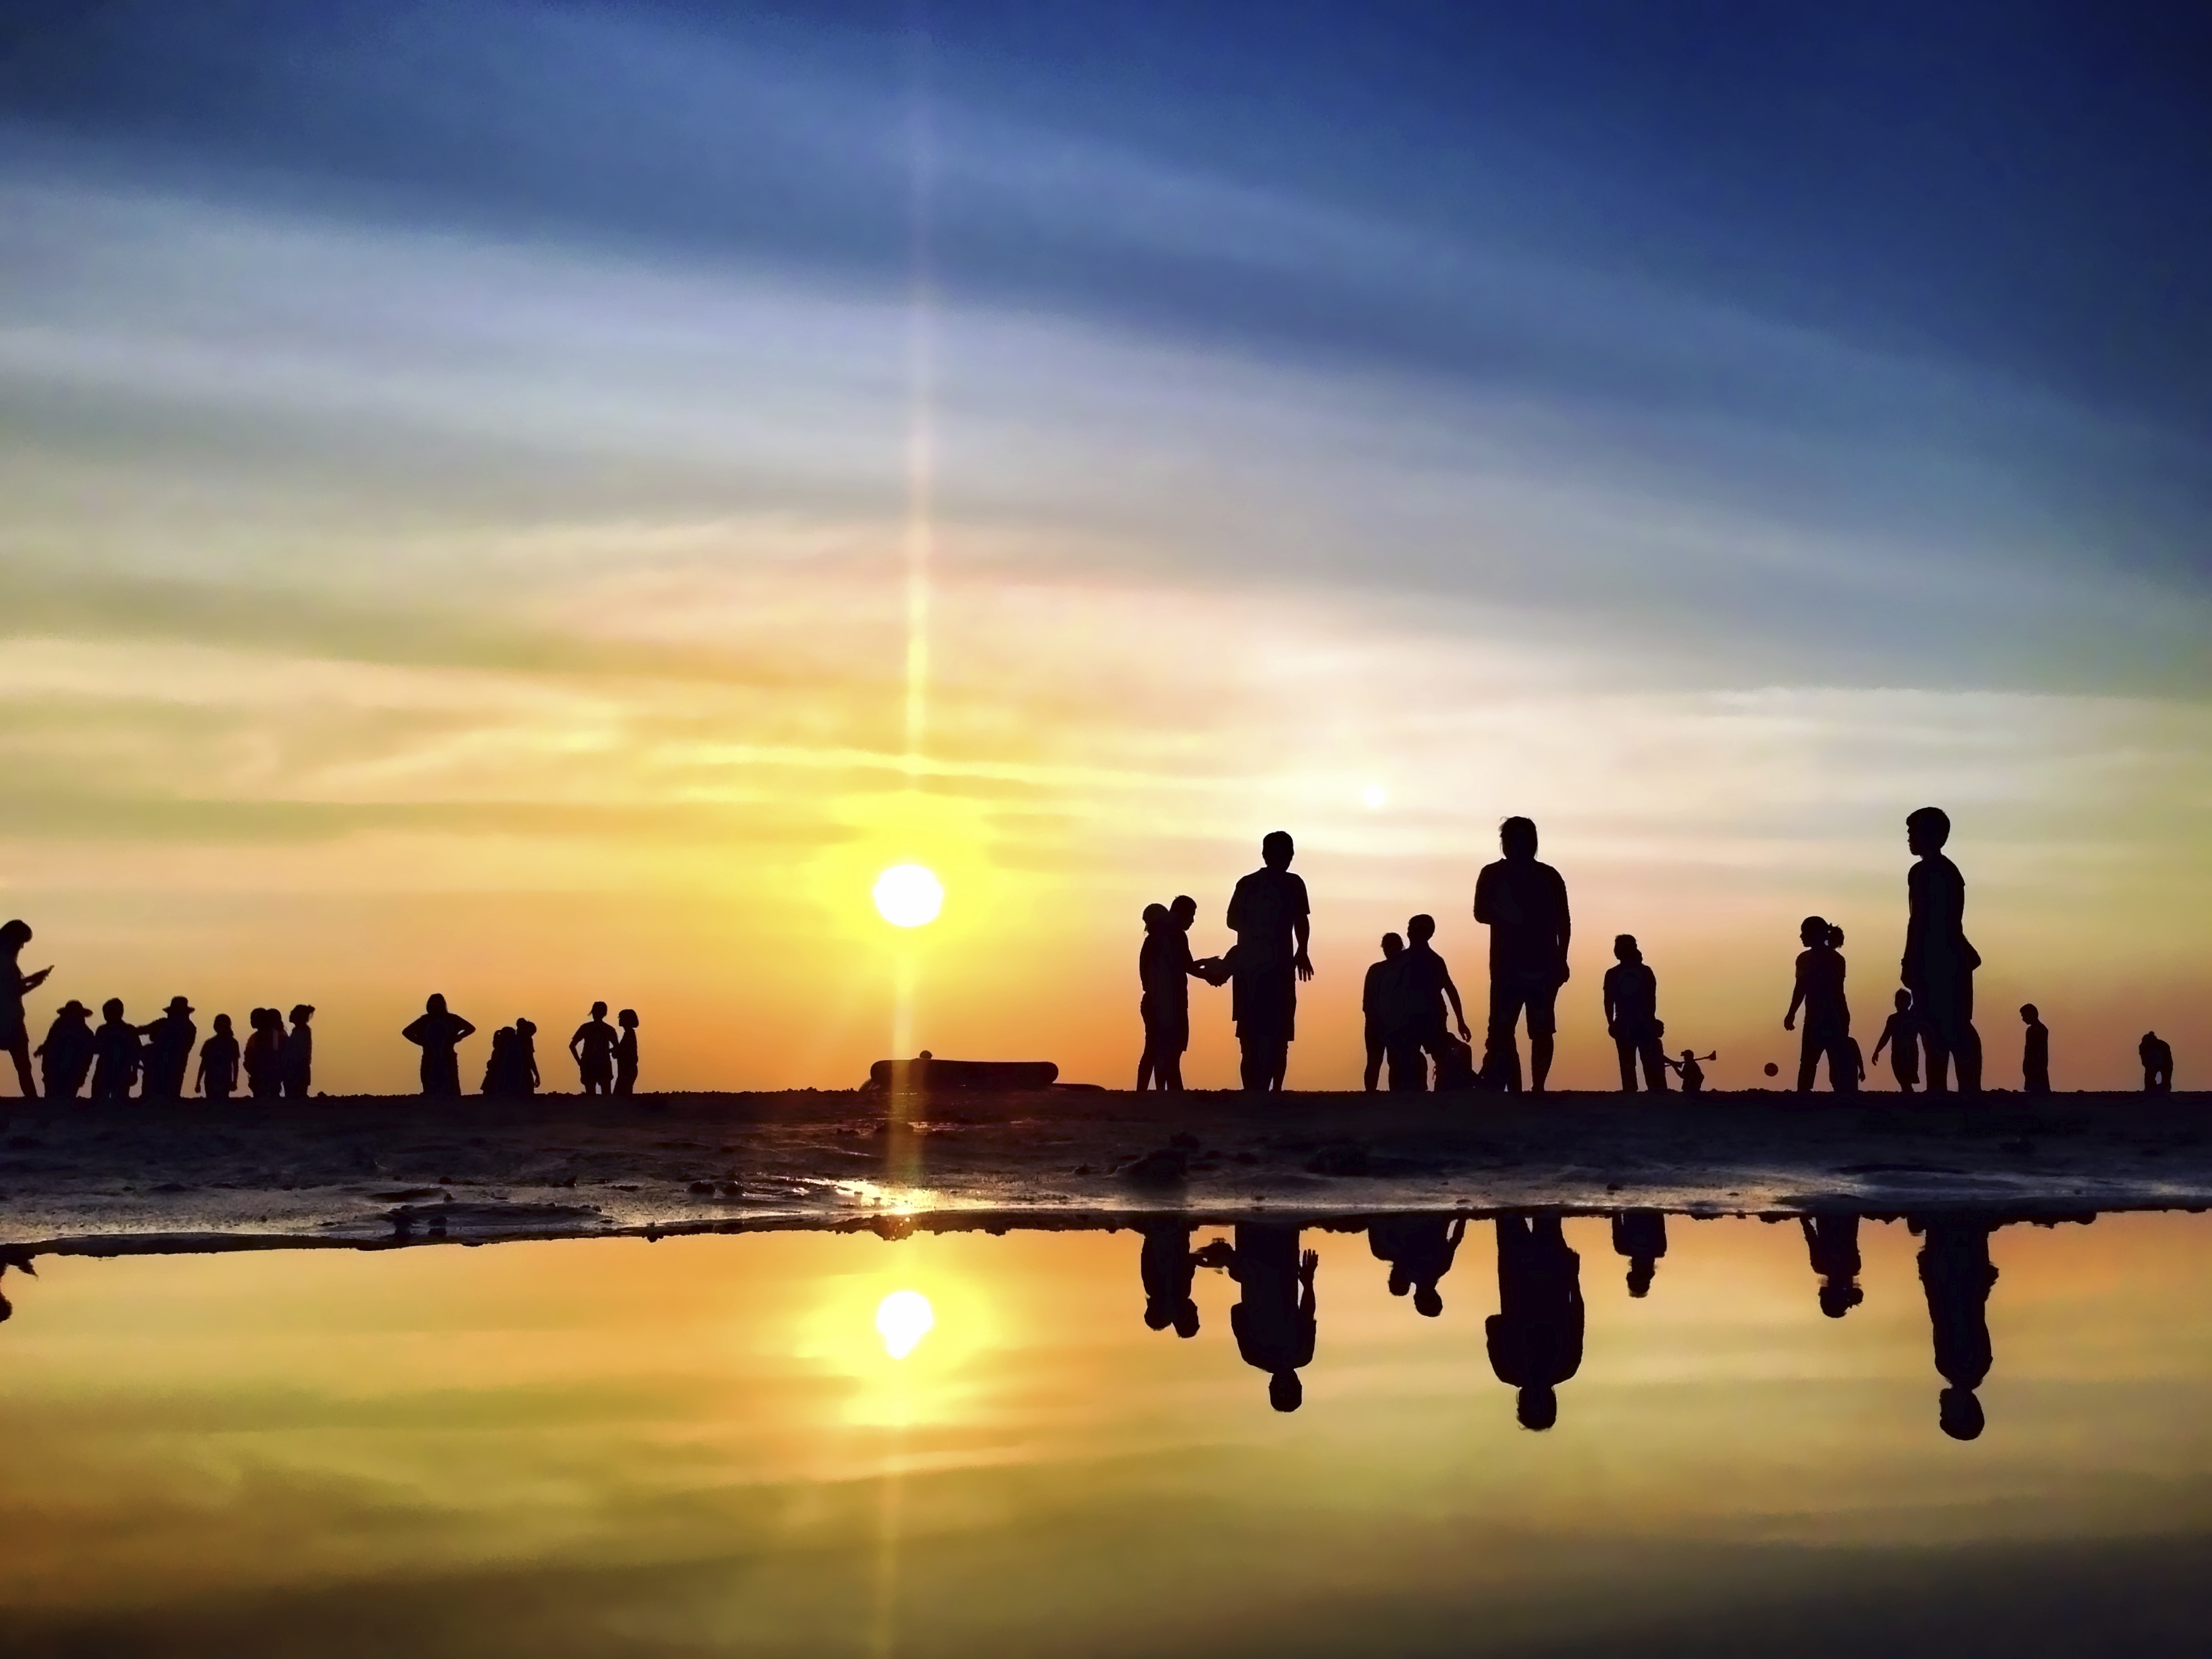 Silhouette of several people on a beach at sunset. (stock image)